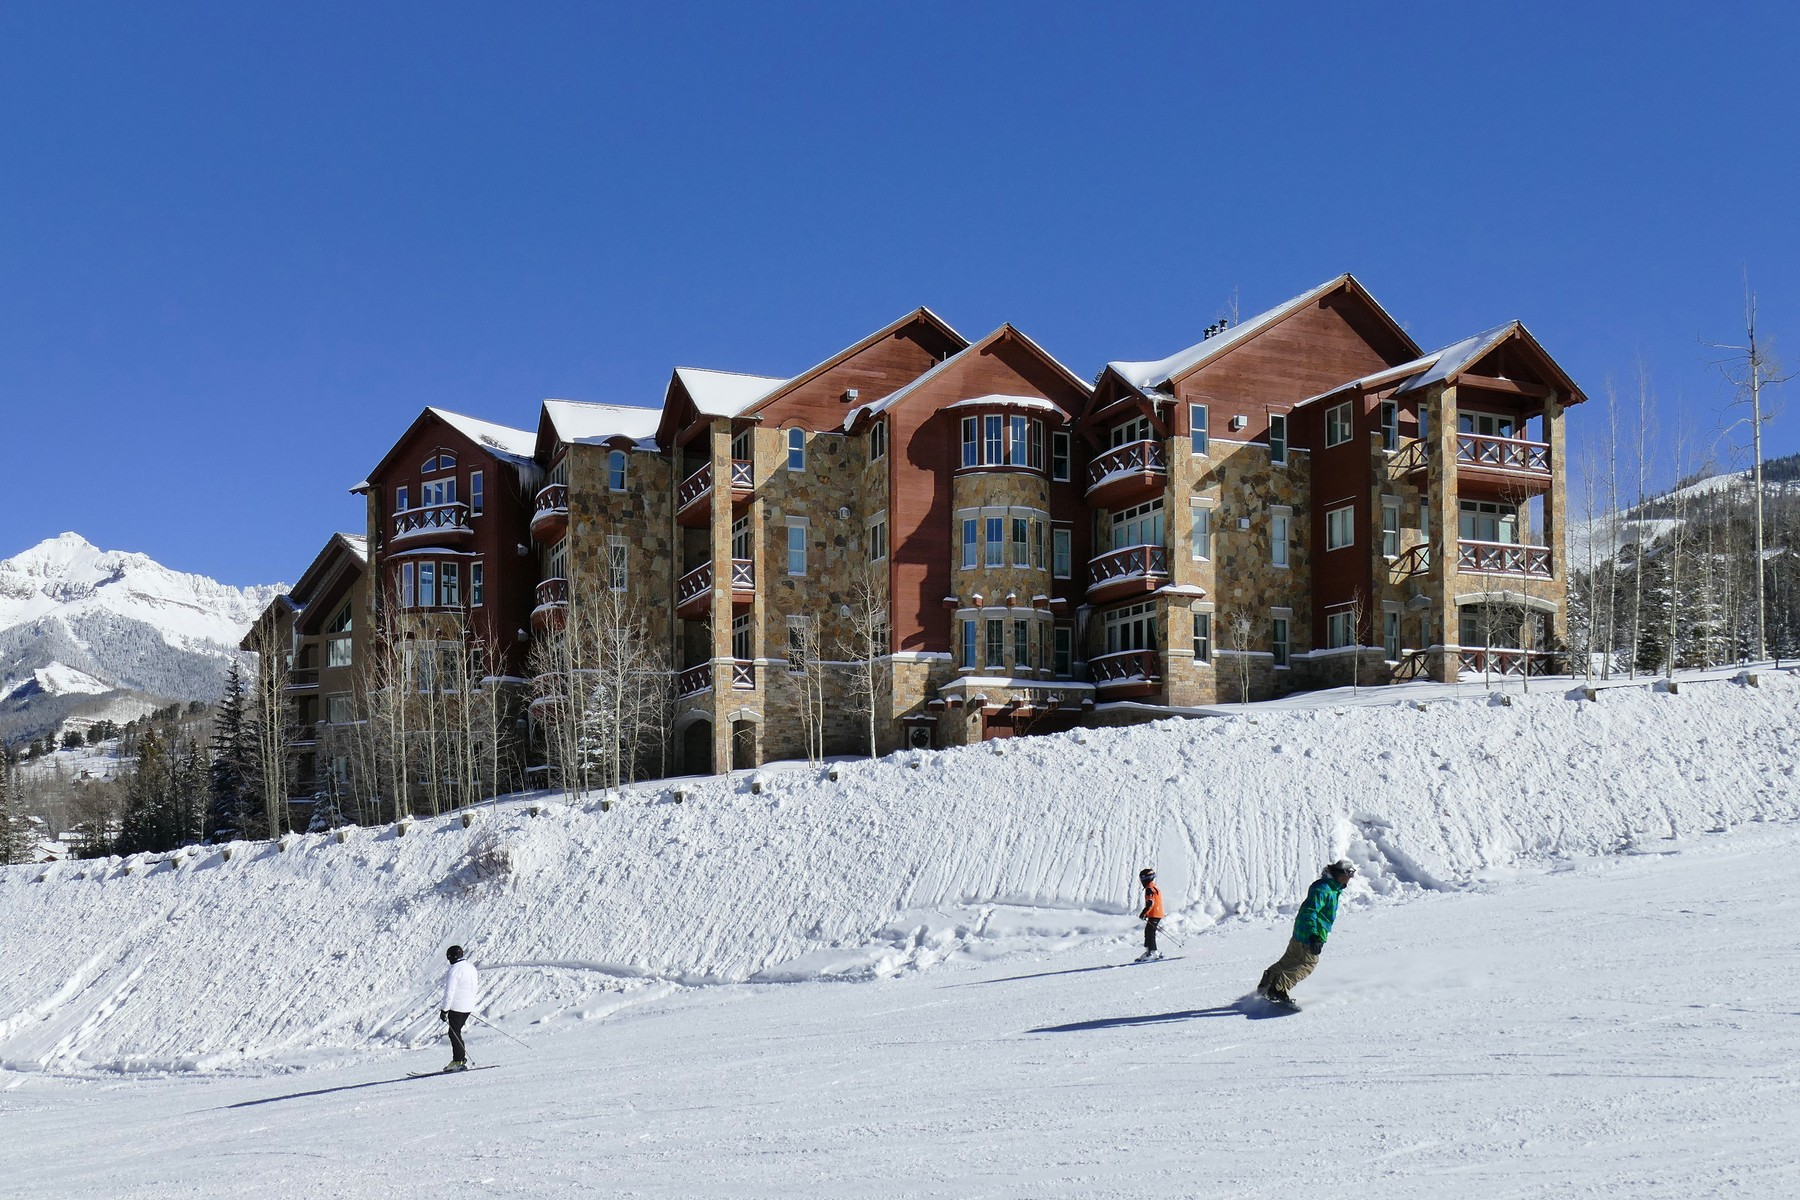 Condominium for Sale at Lorian III, Unit 1 111 San Joaquin Drive, Unit 1 Telluride, Colorado, 81435 United States